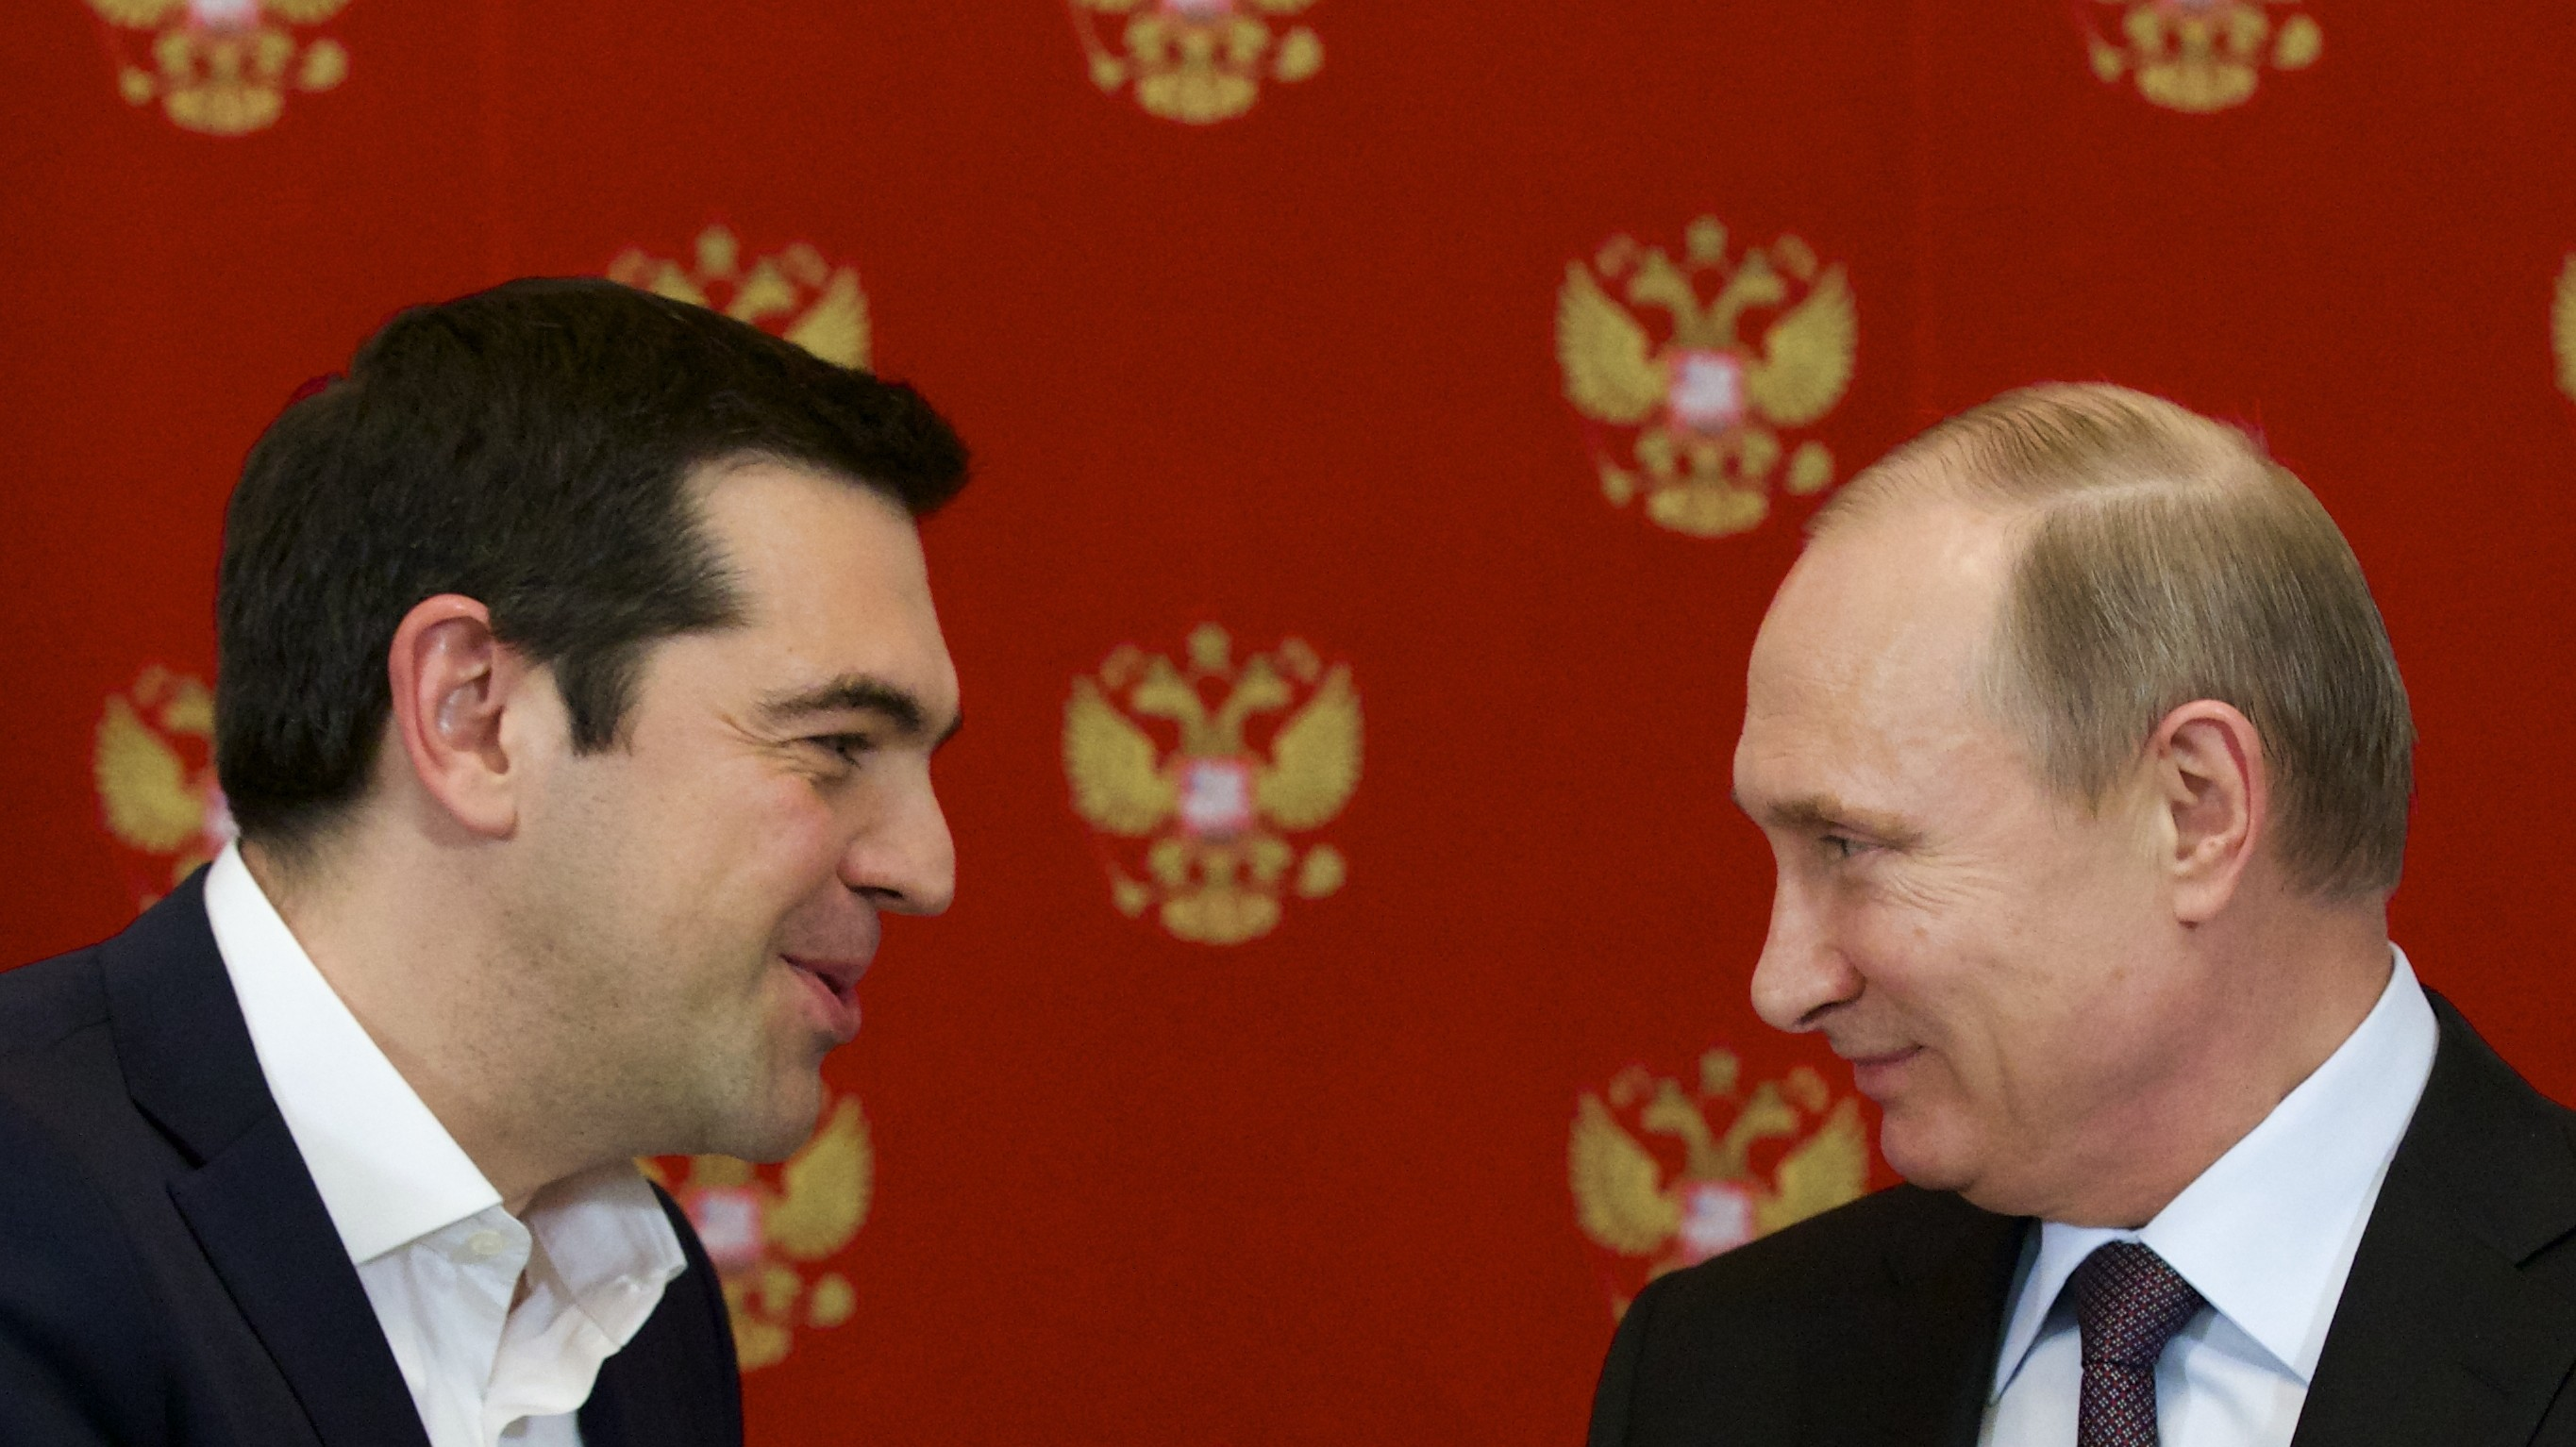 The Greek Prime Minister's Meeting With Putin Sent a Message to the EU